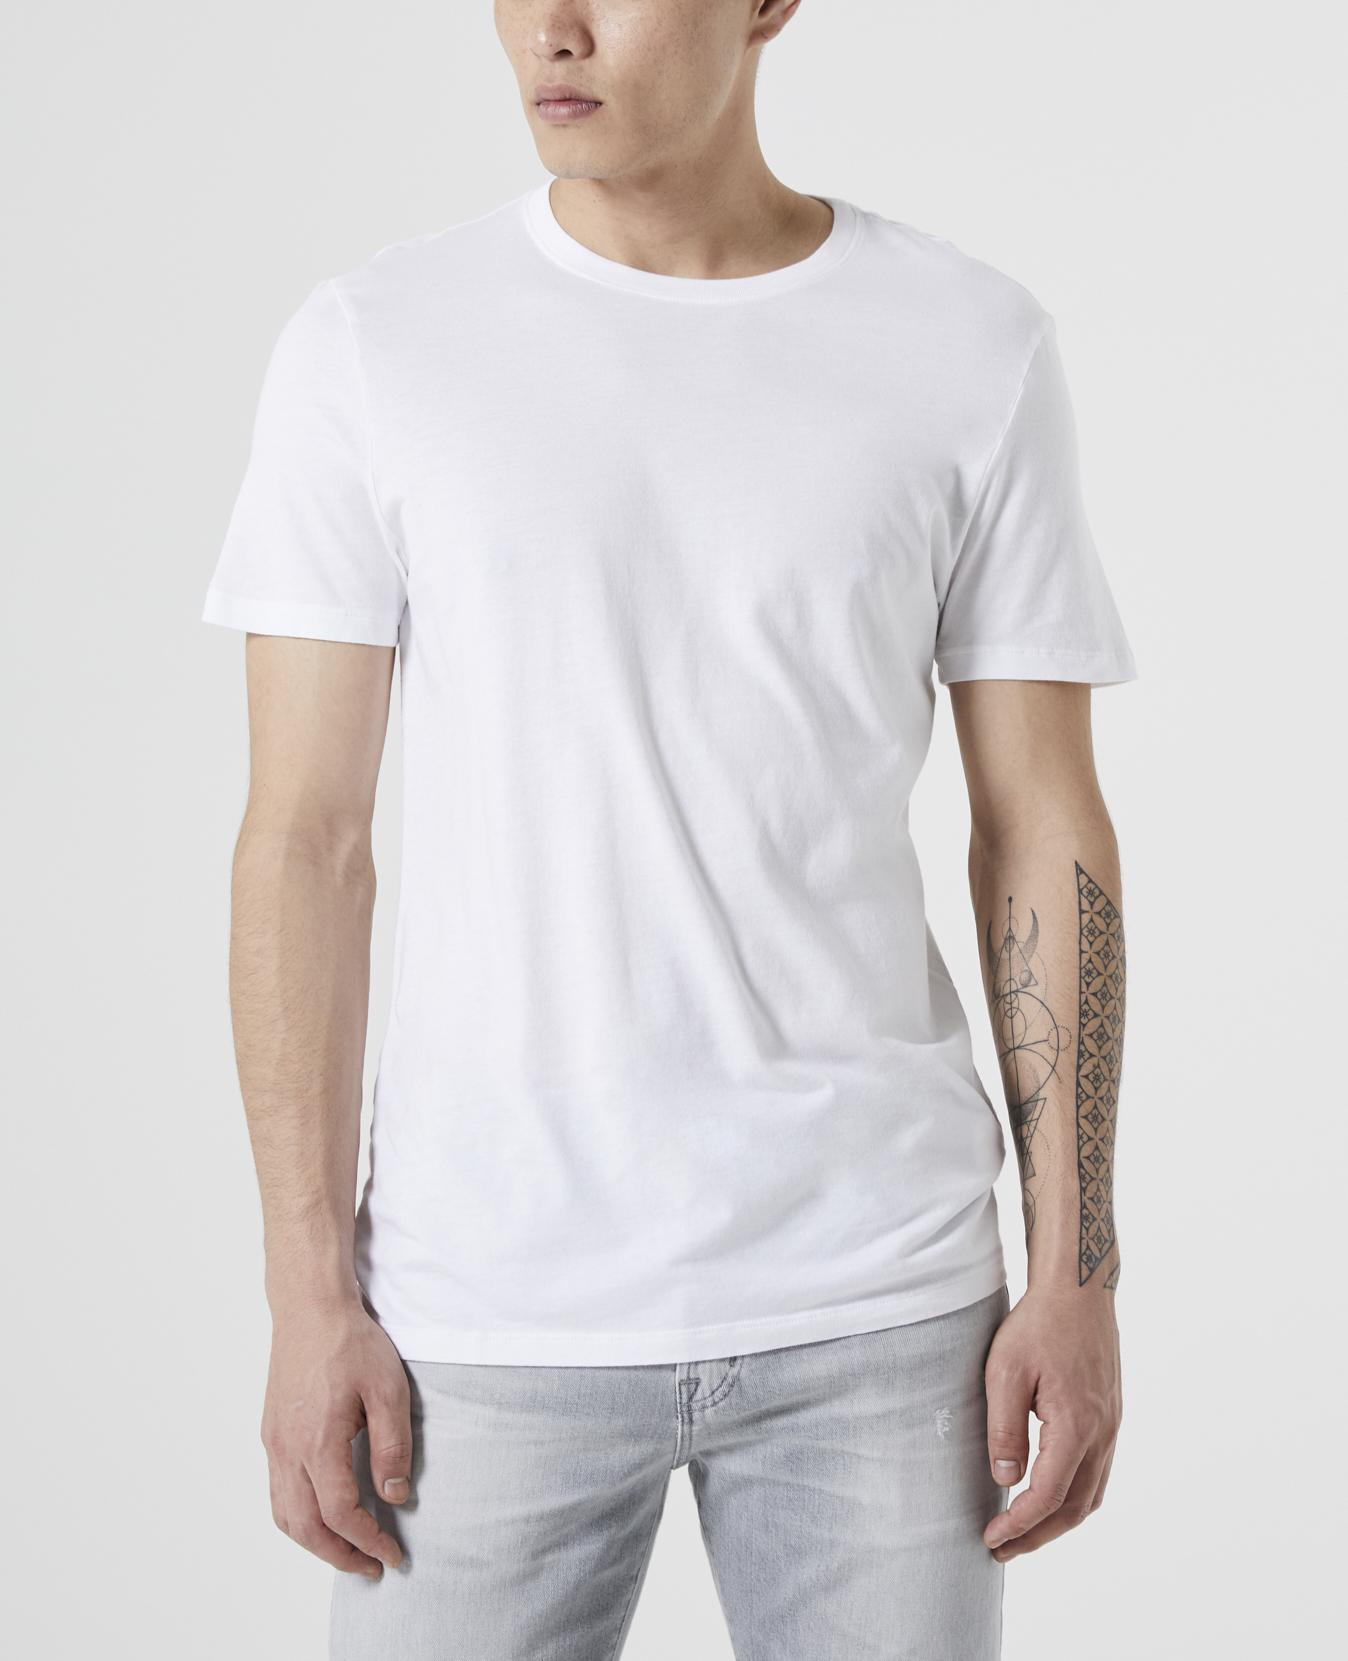 AG Adriano Goldschmied Mens Bryce Crew